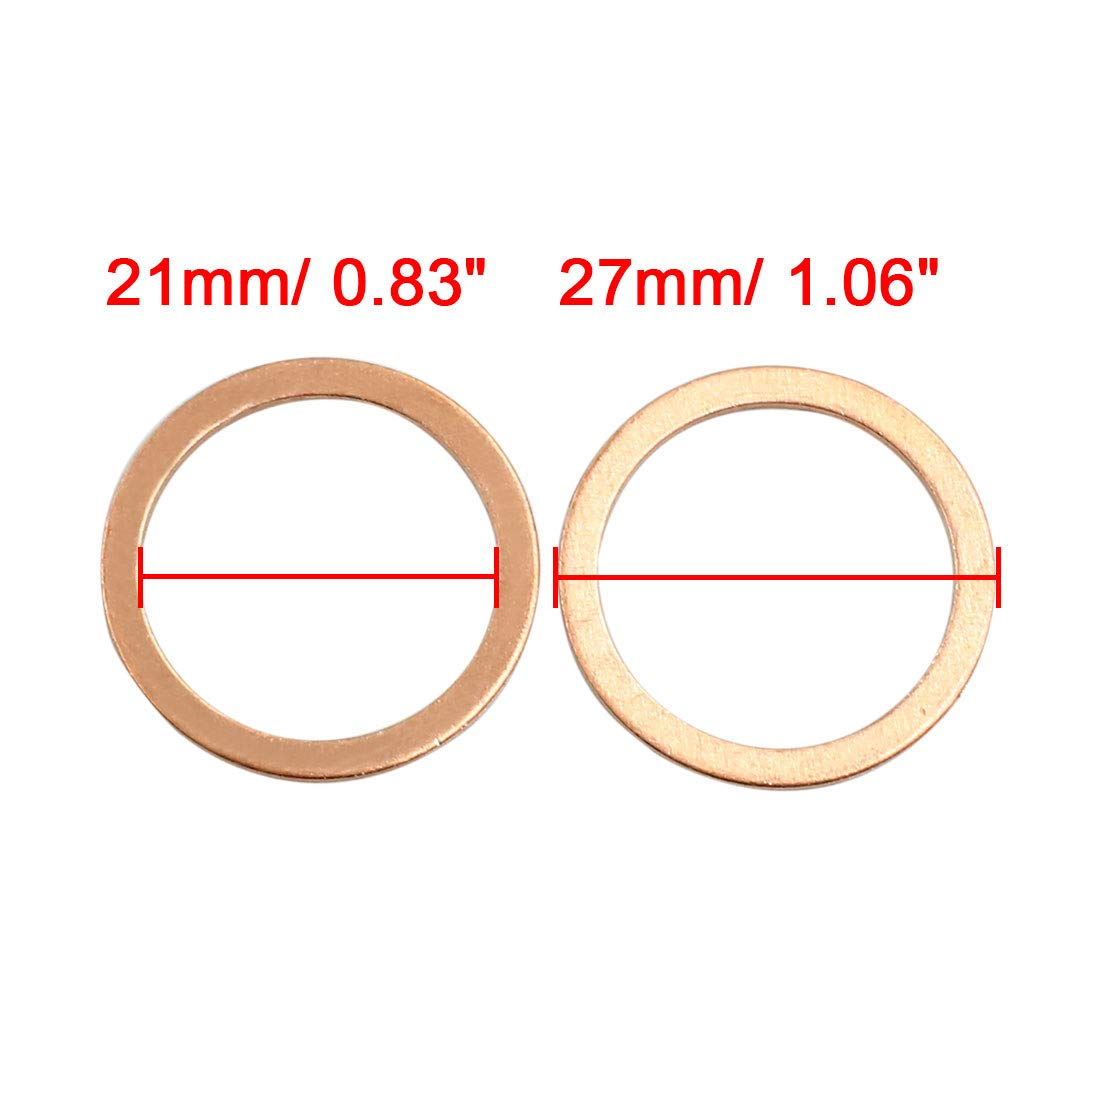 X AUTOHAUX 5 Pcs 21mm Inner Dia Copper Washers Flat Sealing Gasket Rings for Car